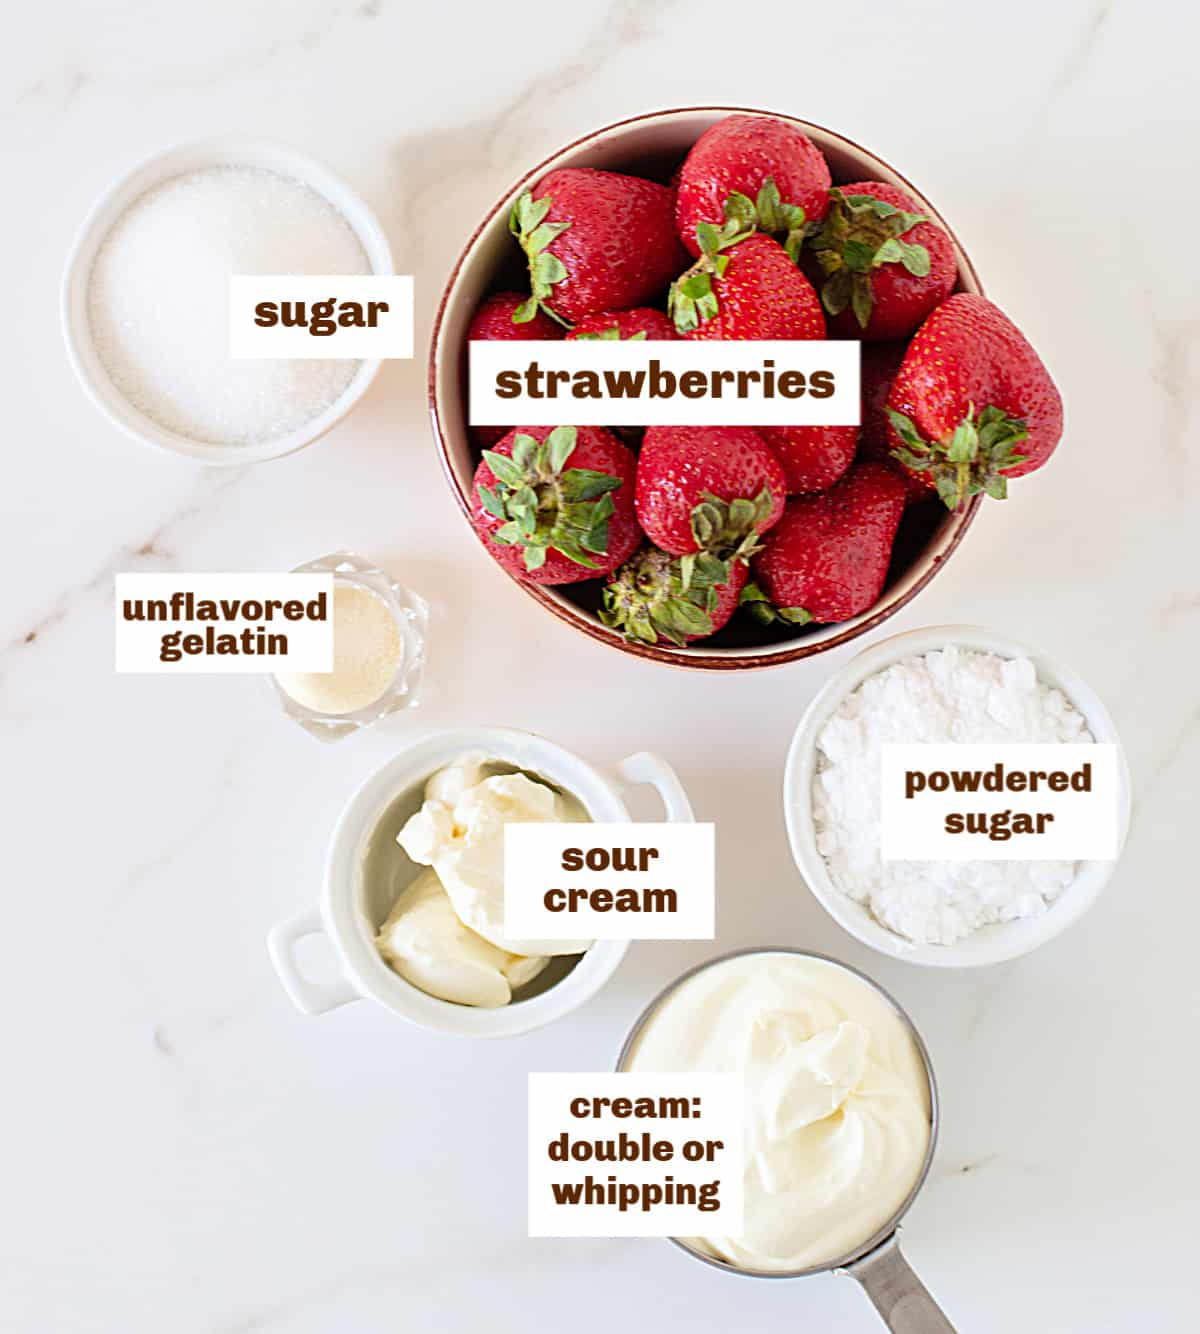 Bowls with strawberries, cream and sugars on a white table